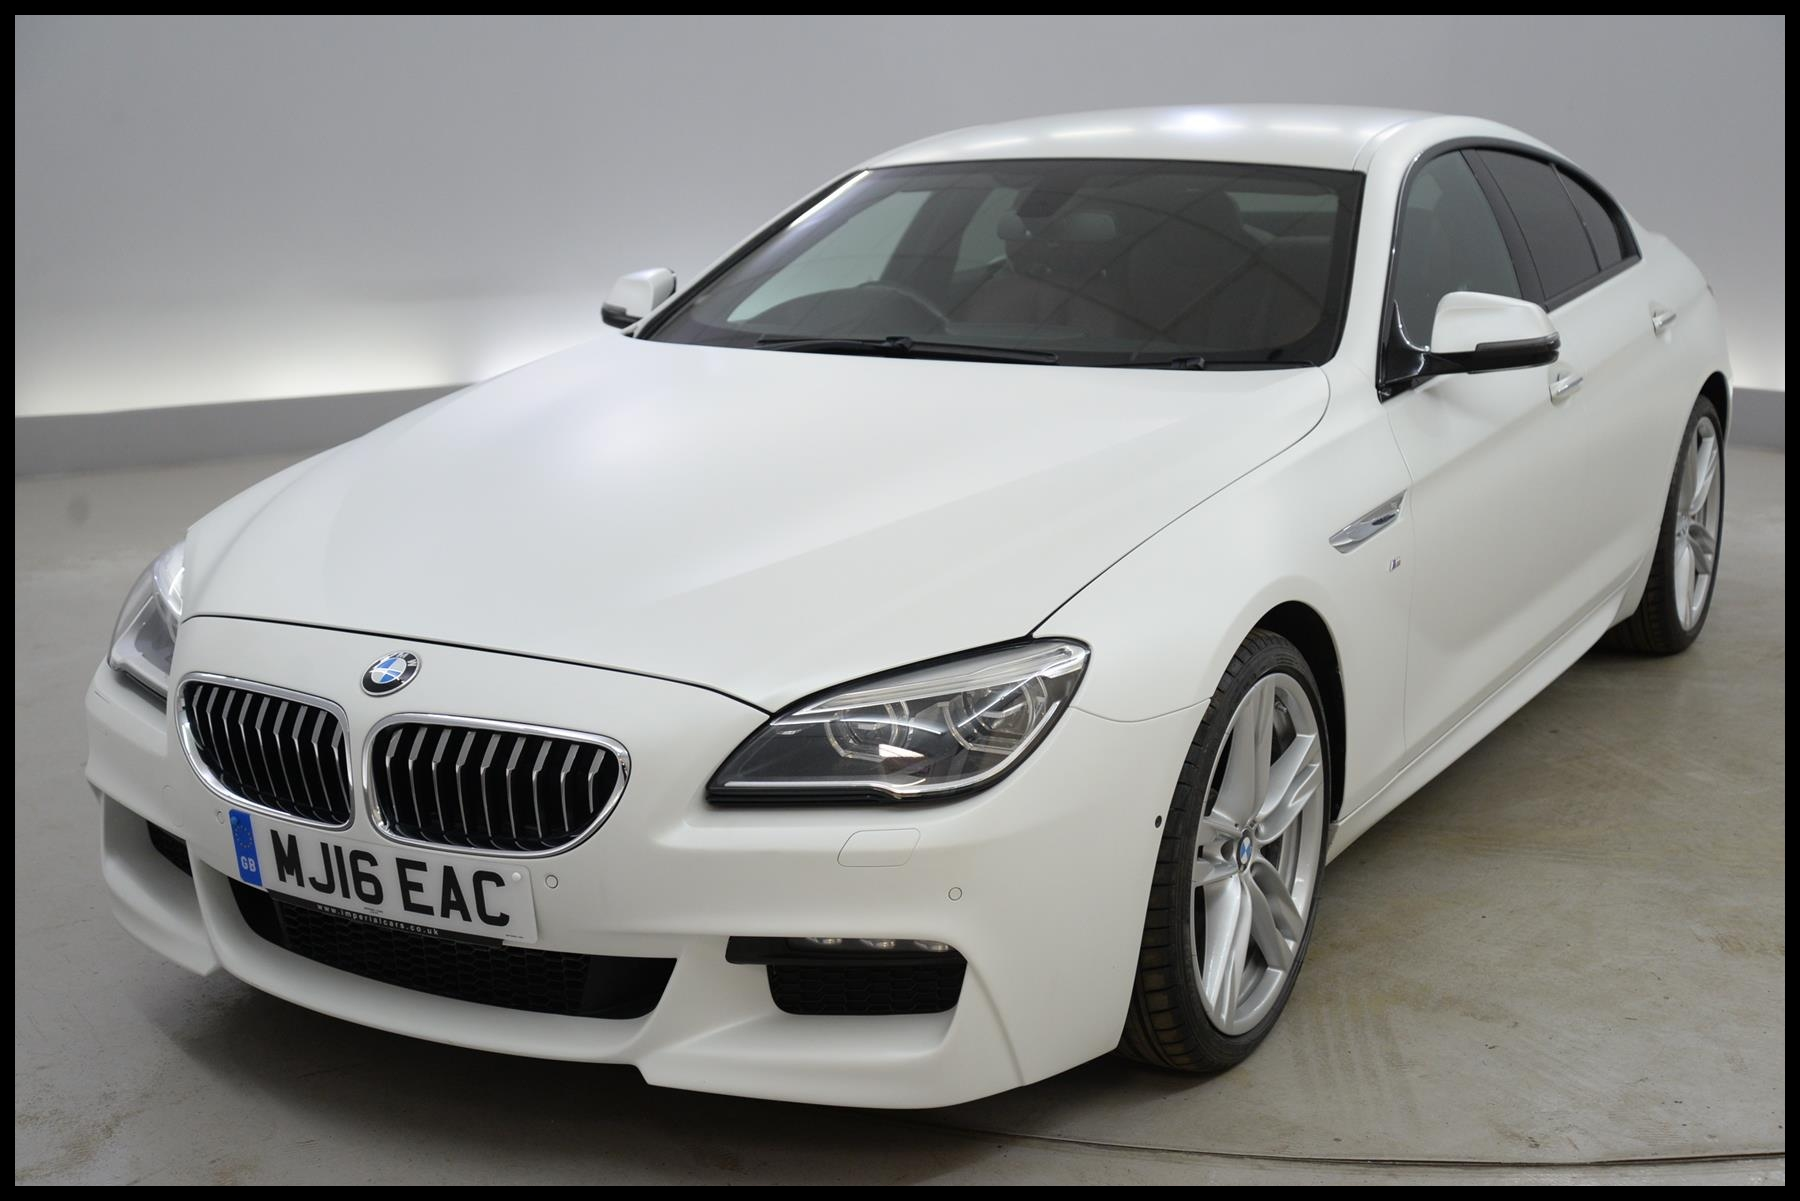 Used 2016 BMW 6 Series Gran Coupe 640d M Sport 4dr Auto NAPPA LEATHER HEAD UP DISPLAY FORT SEATS A for sale in Suffolk